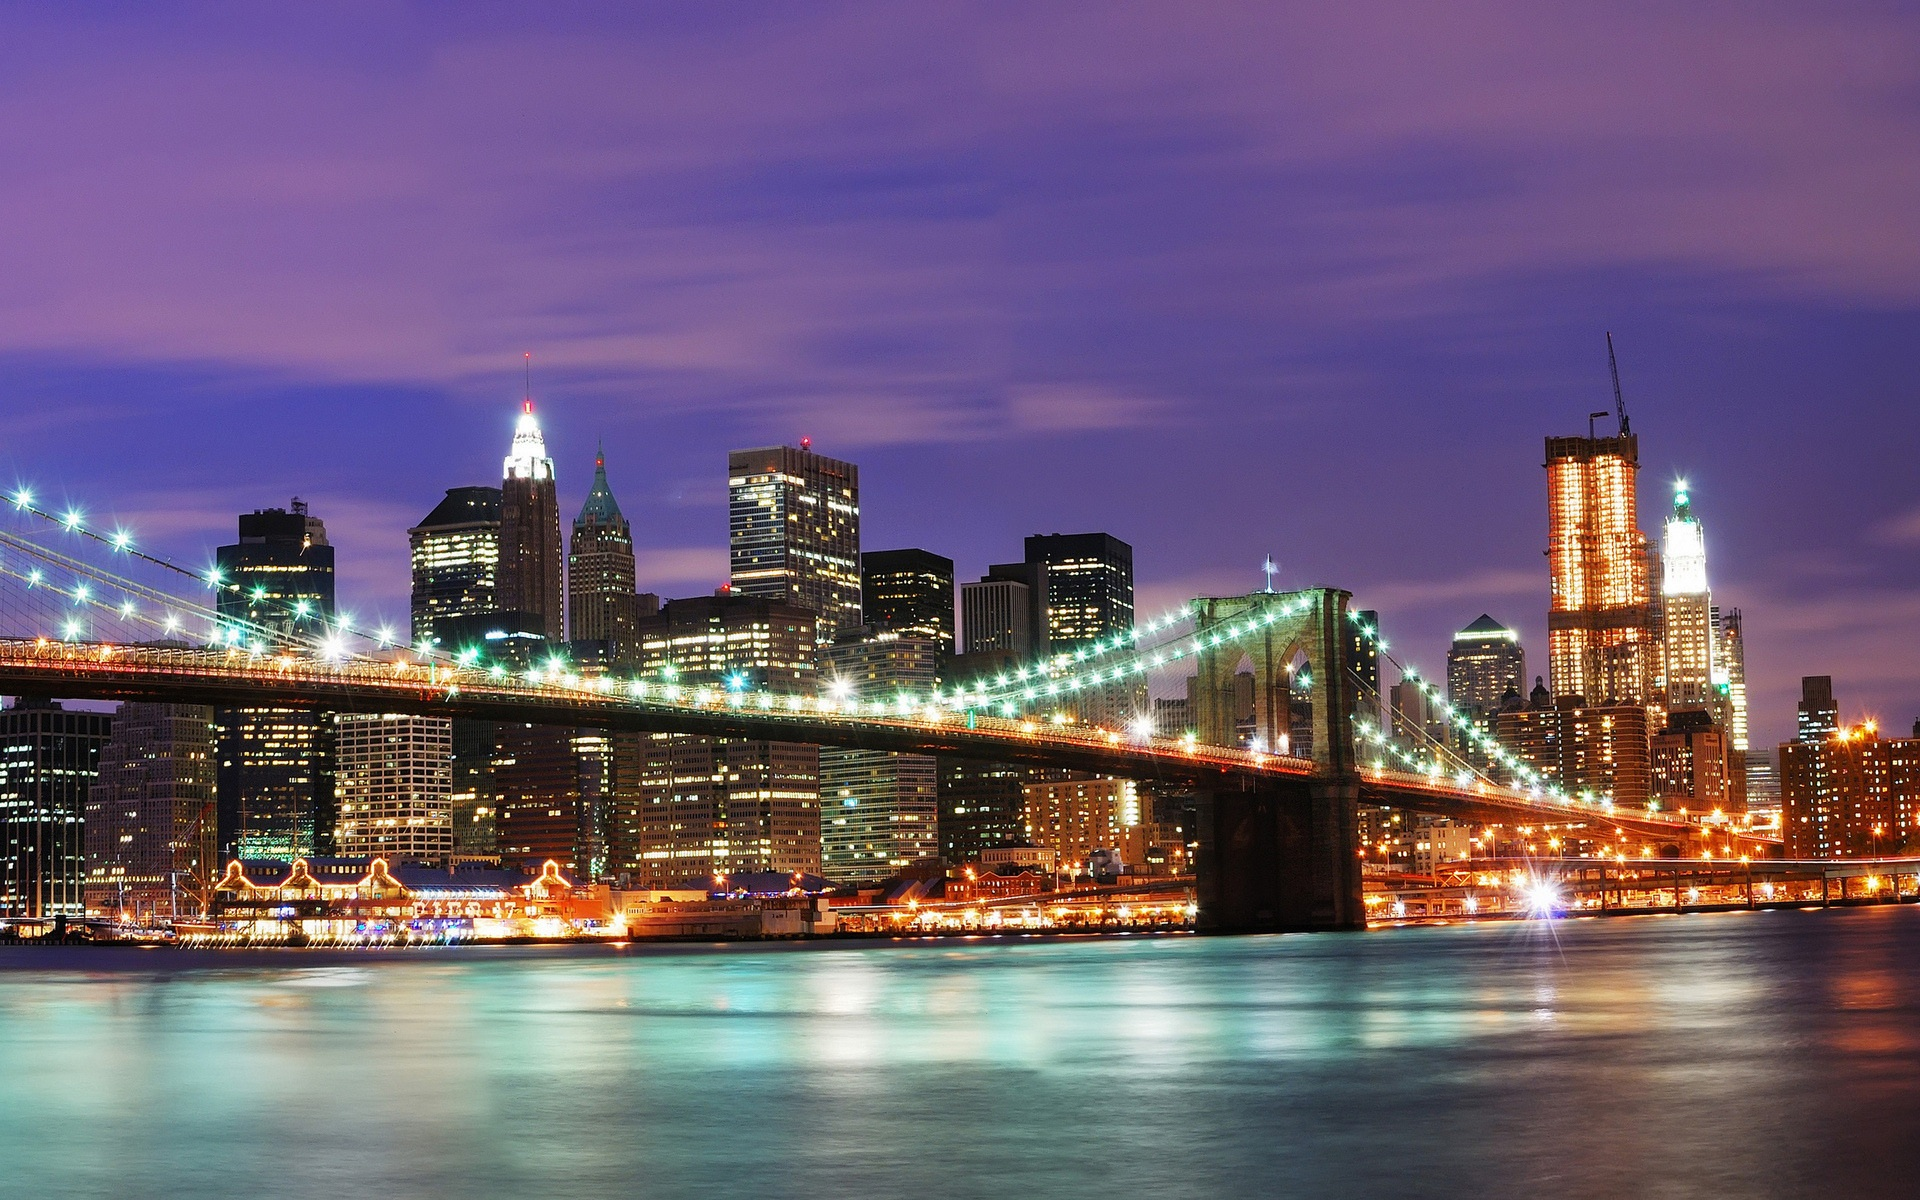 United States New York City night wallpaper - 1920x1200